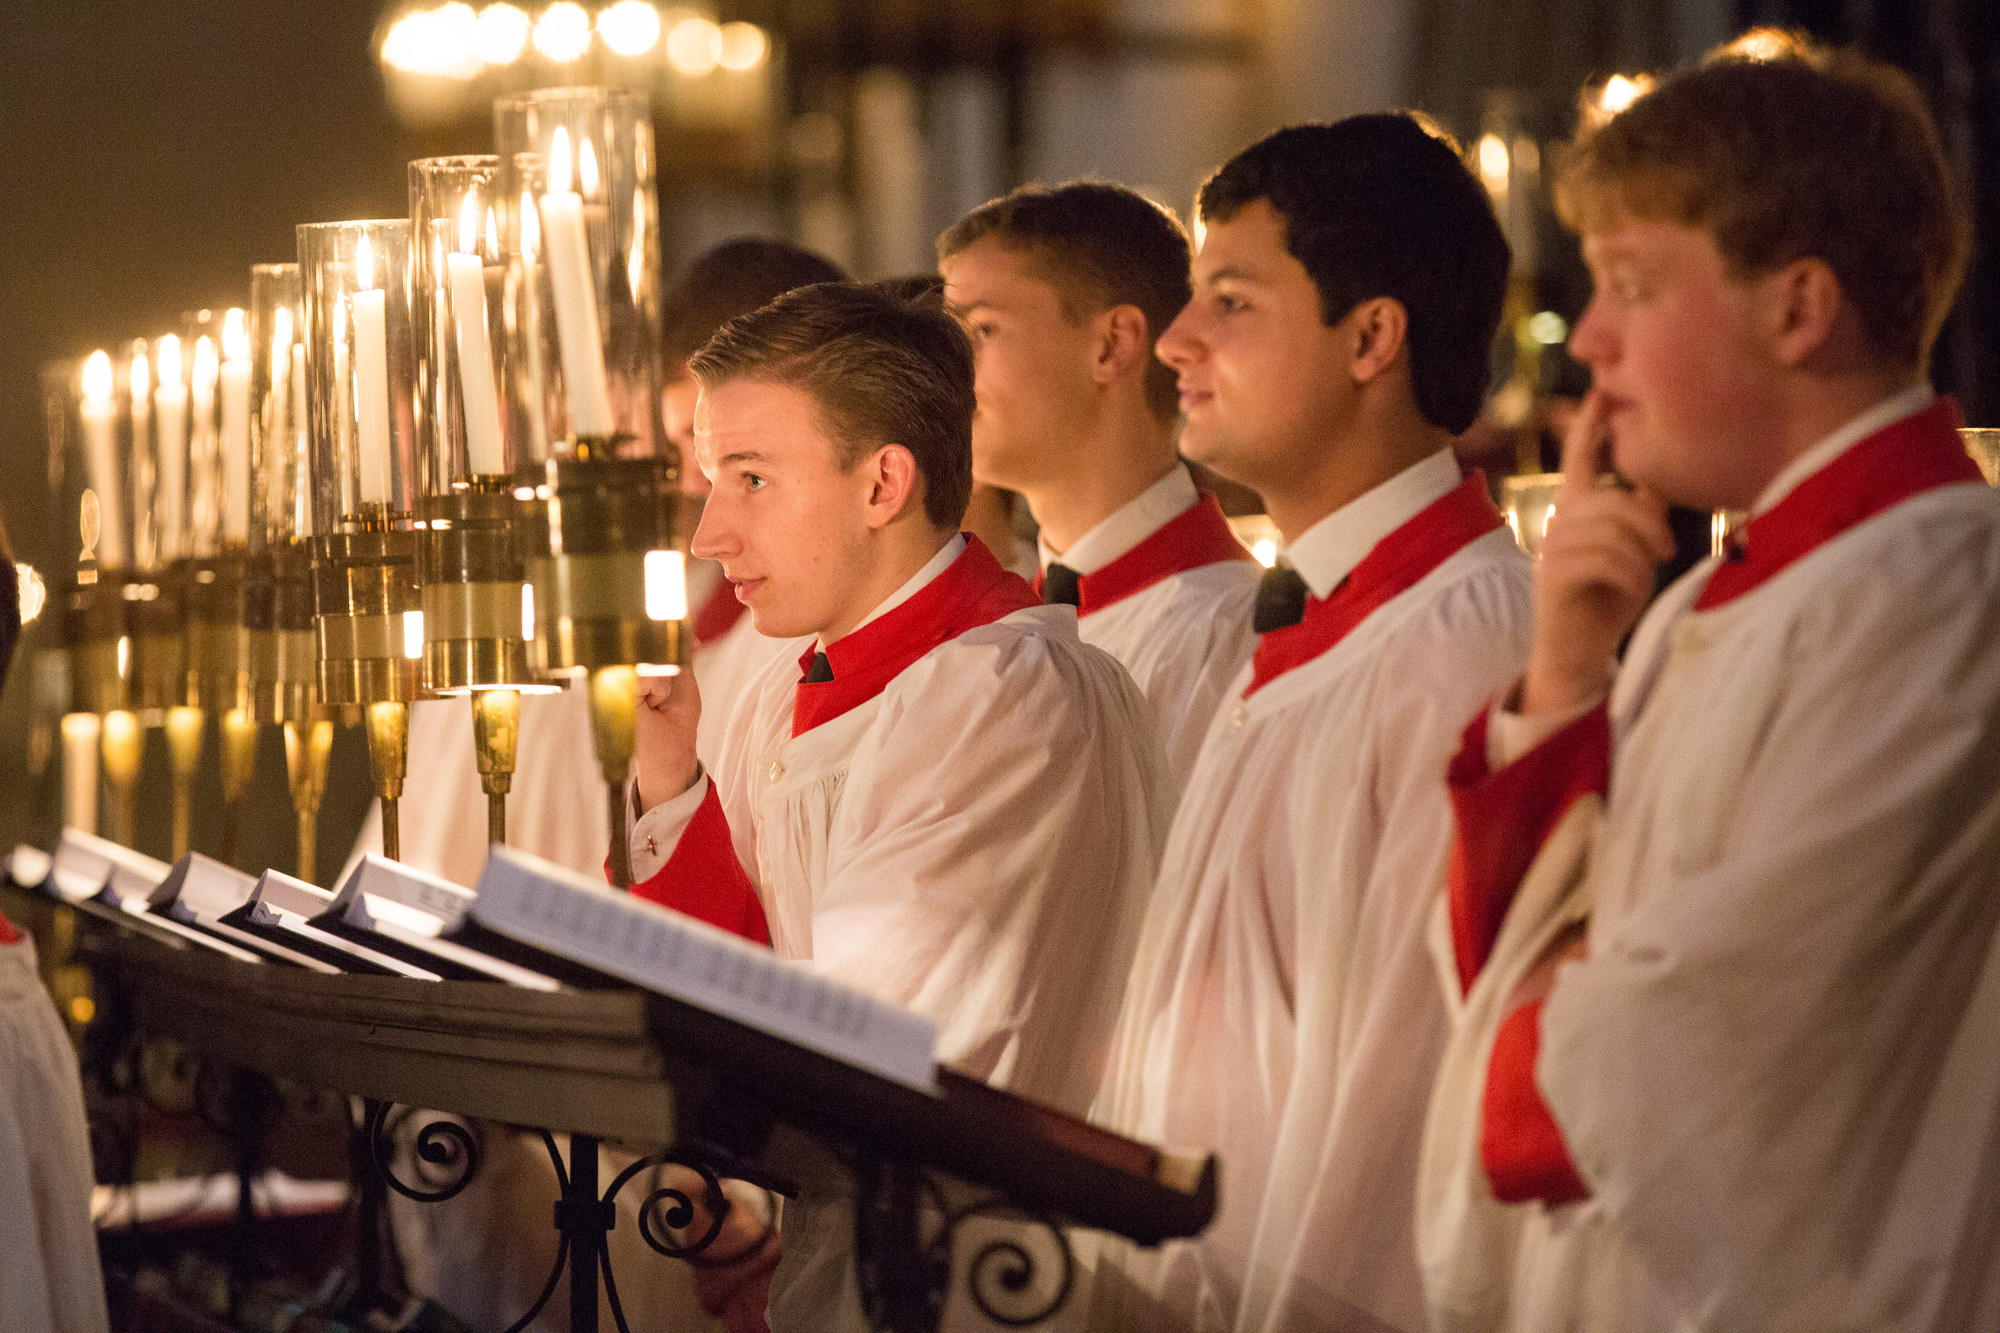 Choral Scholars in the stalls